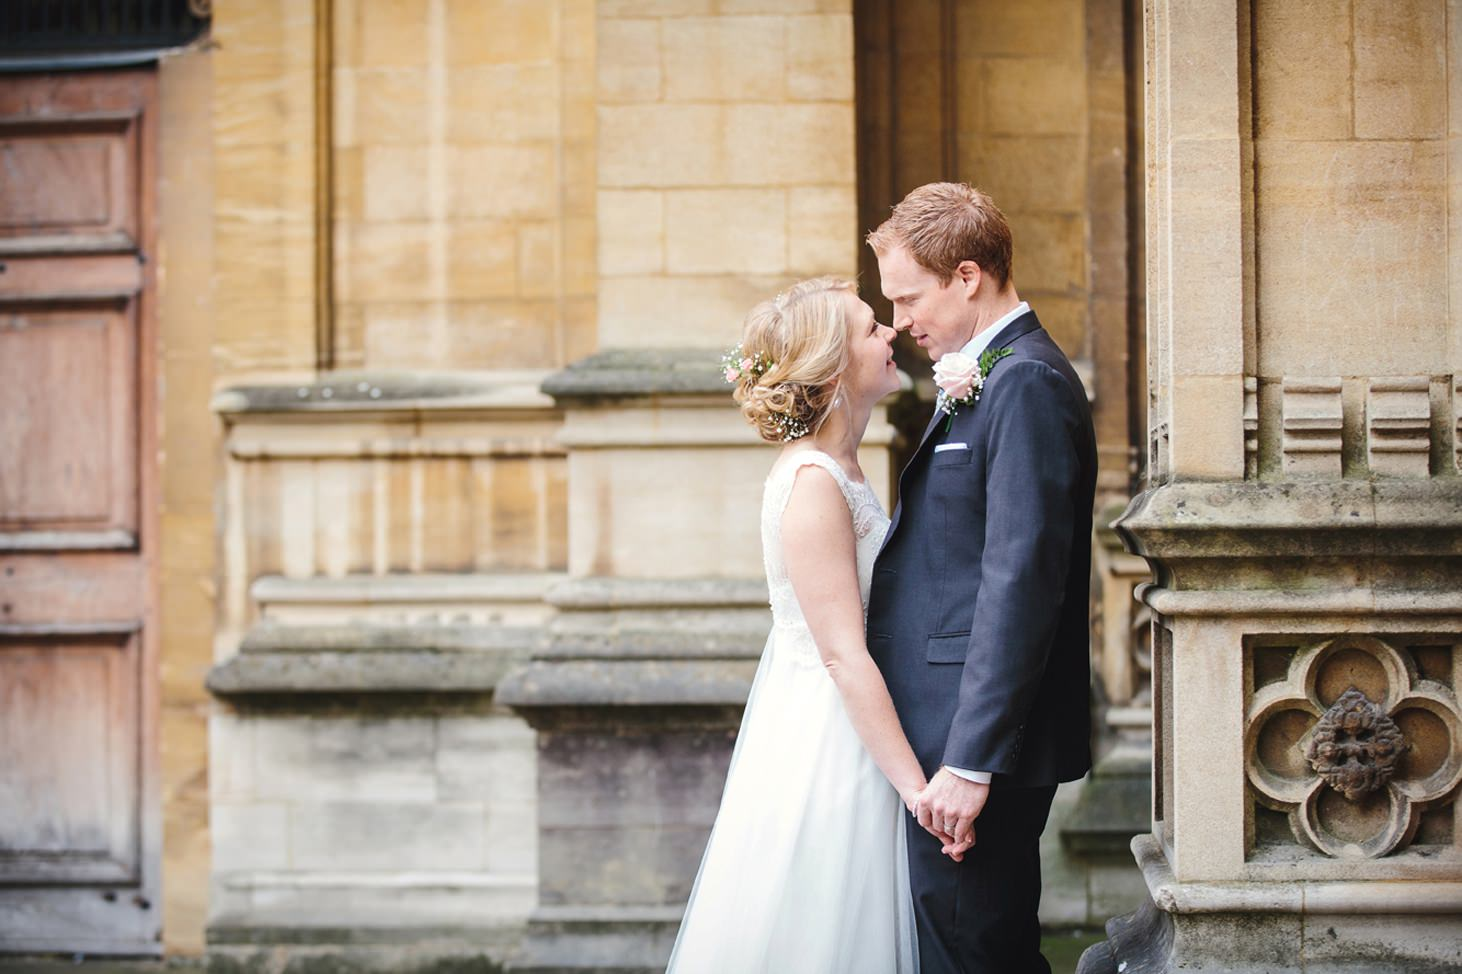 Bodleian library wedding bride and groom together at library